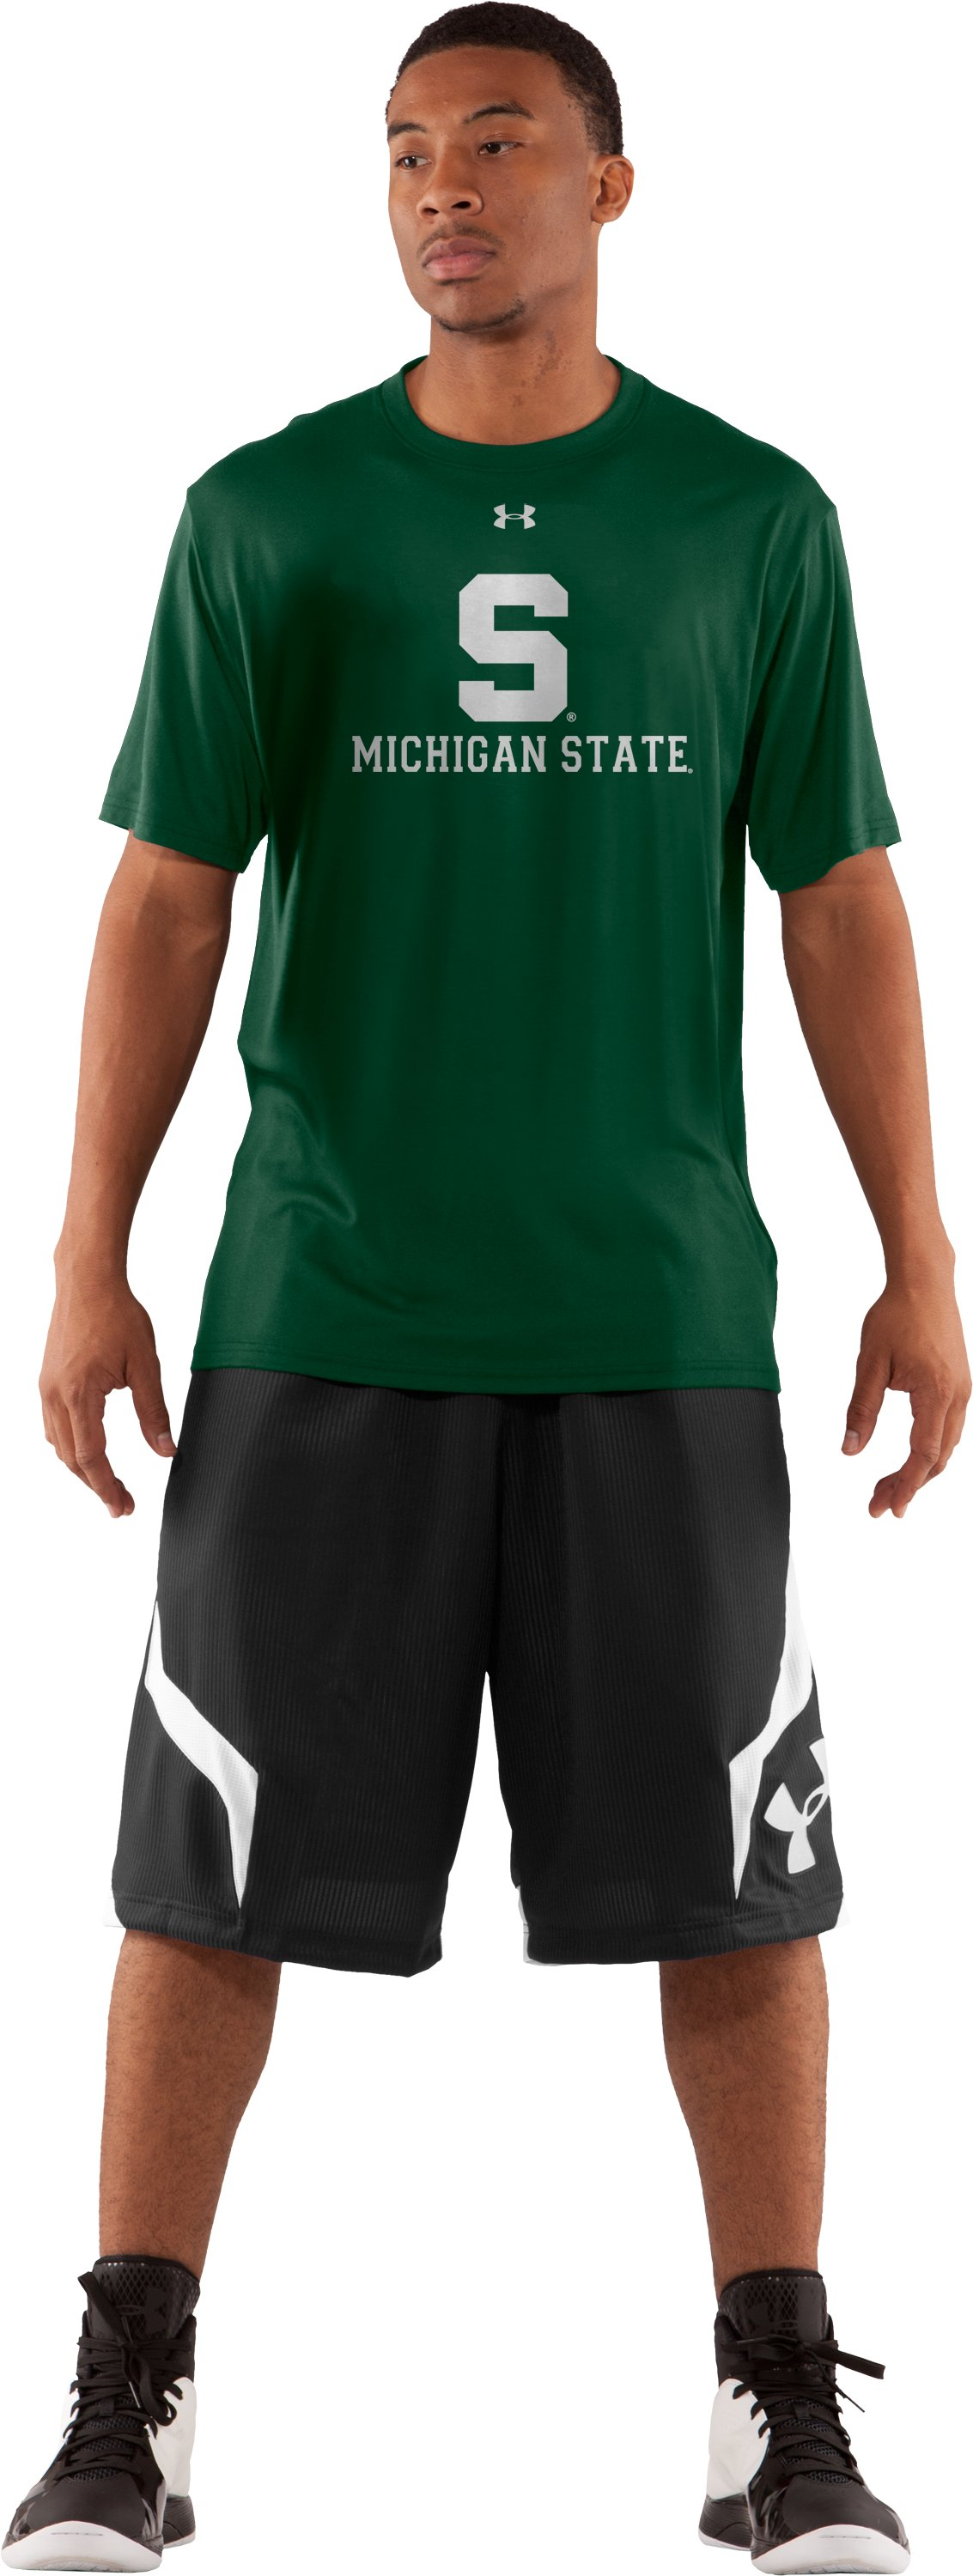 Men's MSU UA T-Shirt, Forest Green, Front